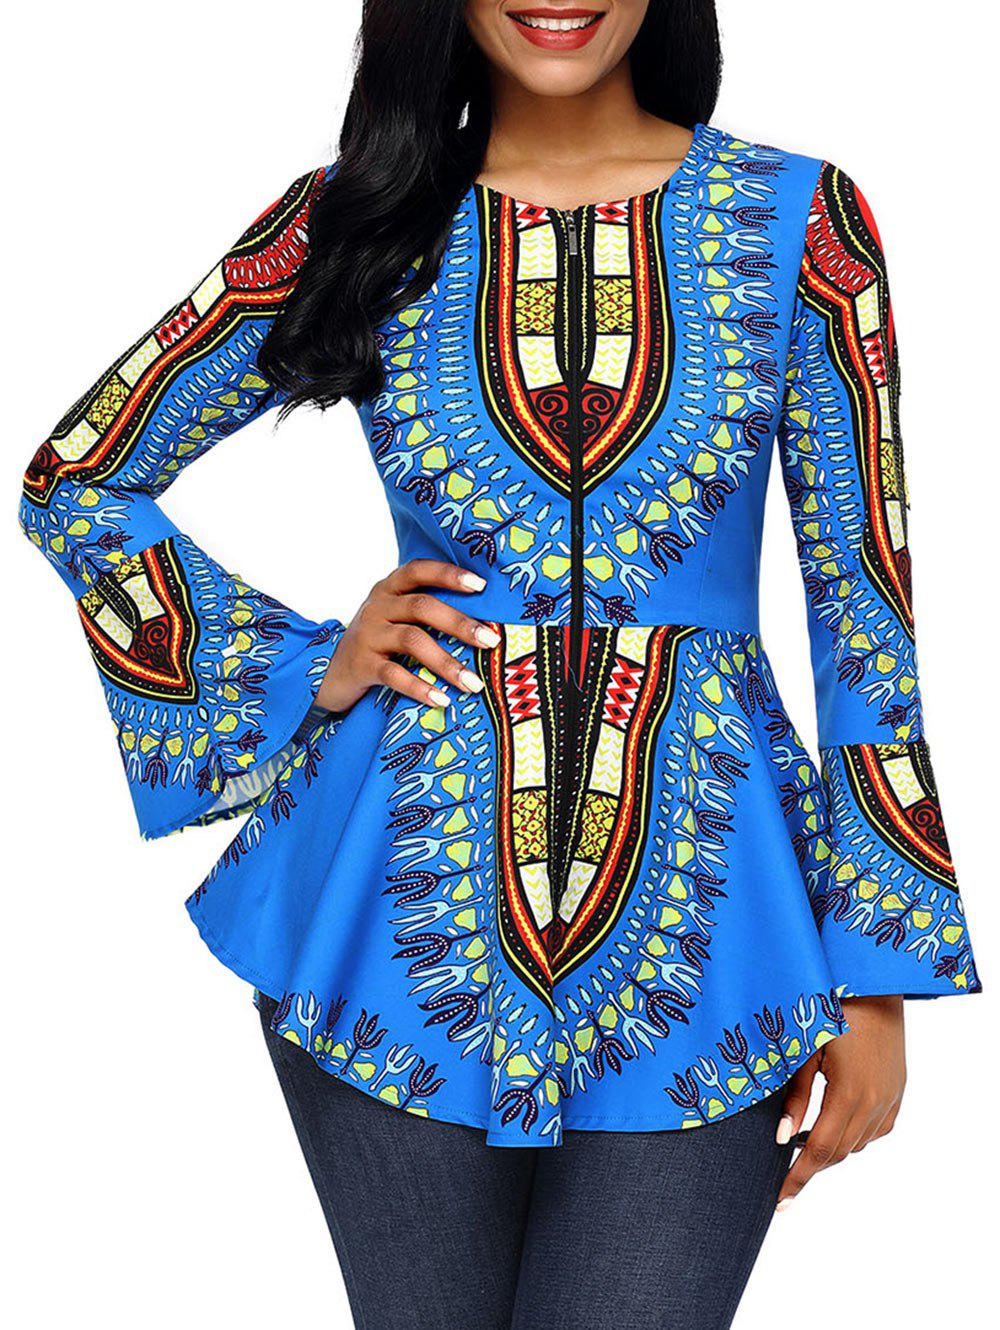 Tribal Print Flare Sleeve Peplum TopWOMEN<br><br>Size: 2XL; Color: BLUE; Material: Polyester,Spandex; Shirt Length: Regular; Sleeve Length: Full; Collar: Round Neck; Style: Fashion; Sleeve Type: Flare Sleeve; Pattern Type: Print; Season: Fall,Spring; Weight: 0.3500kg; Package Contents: 1 x Top;